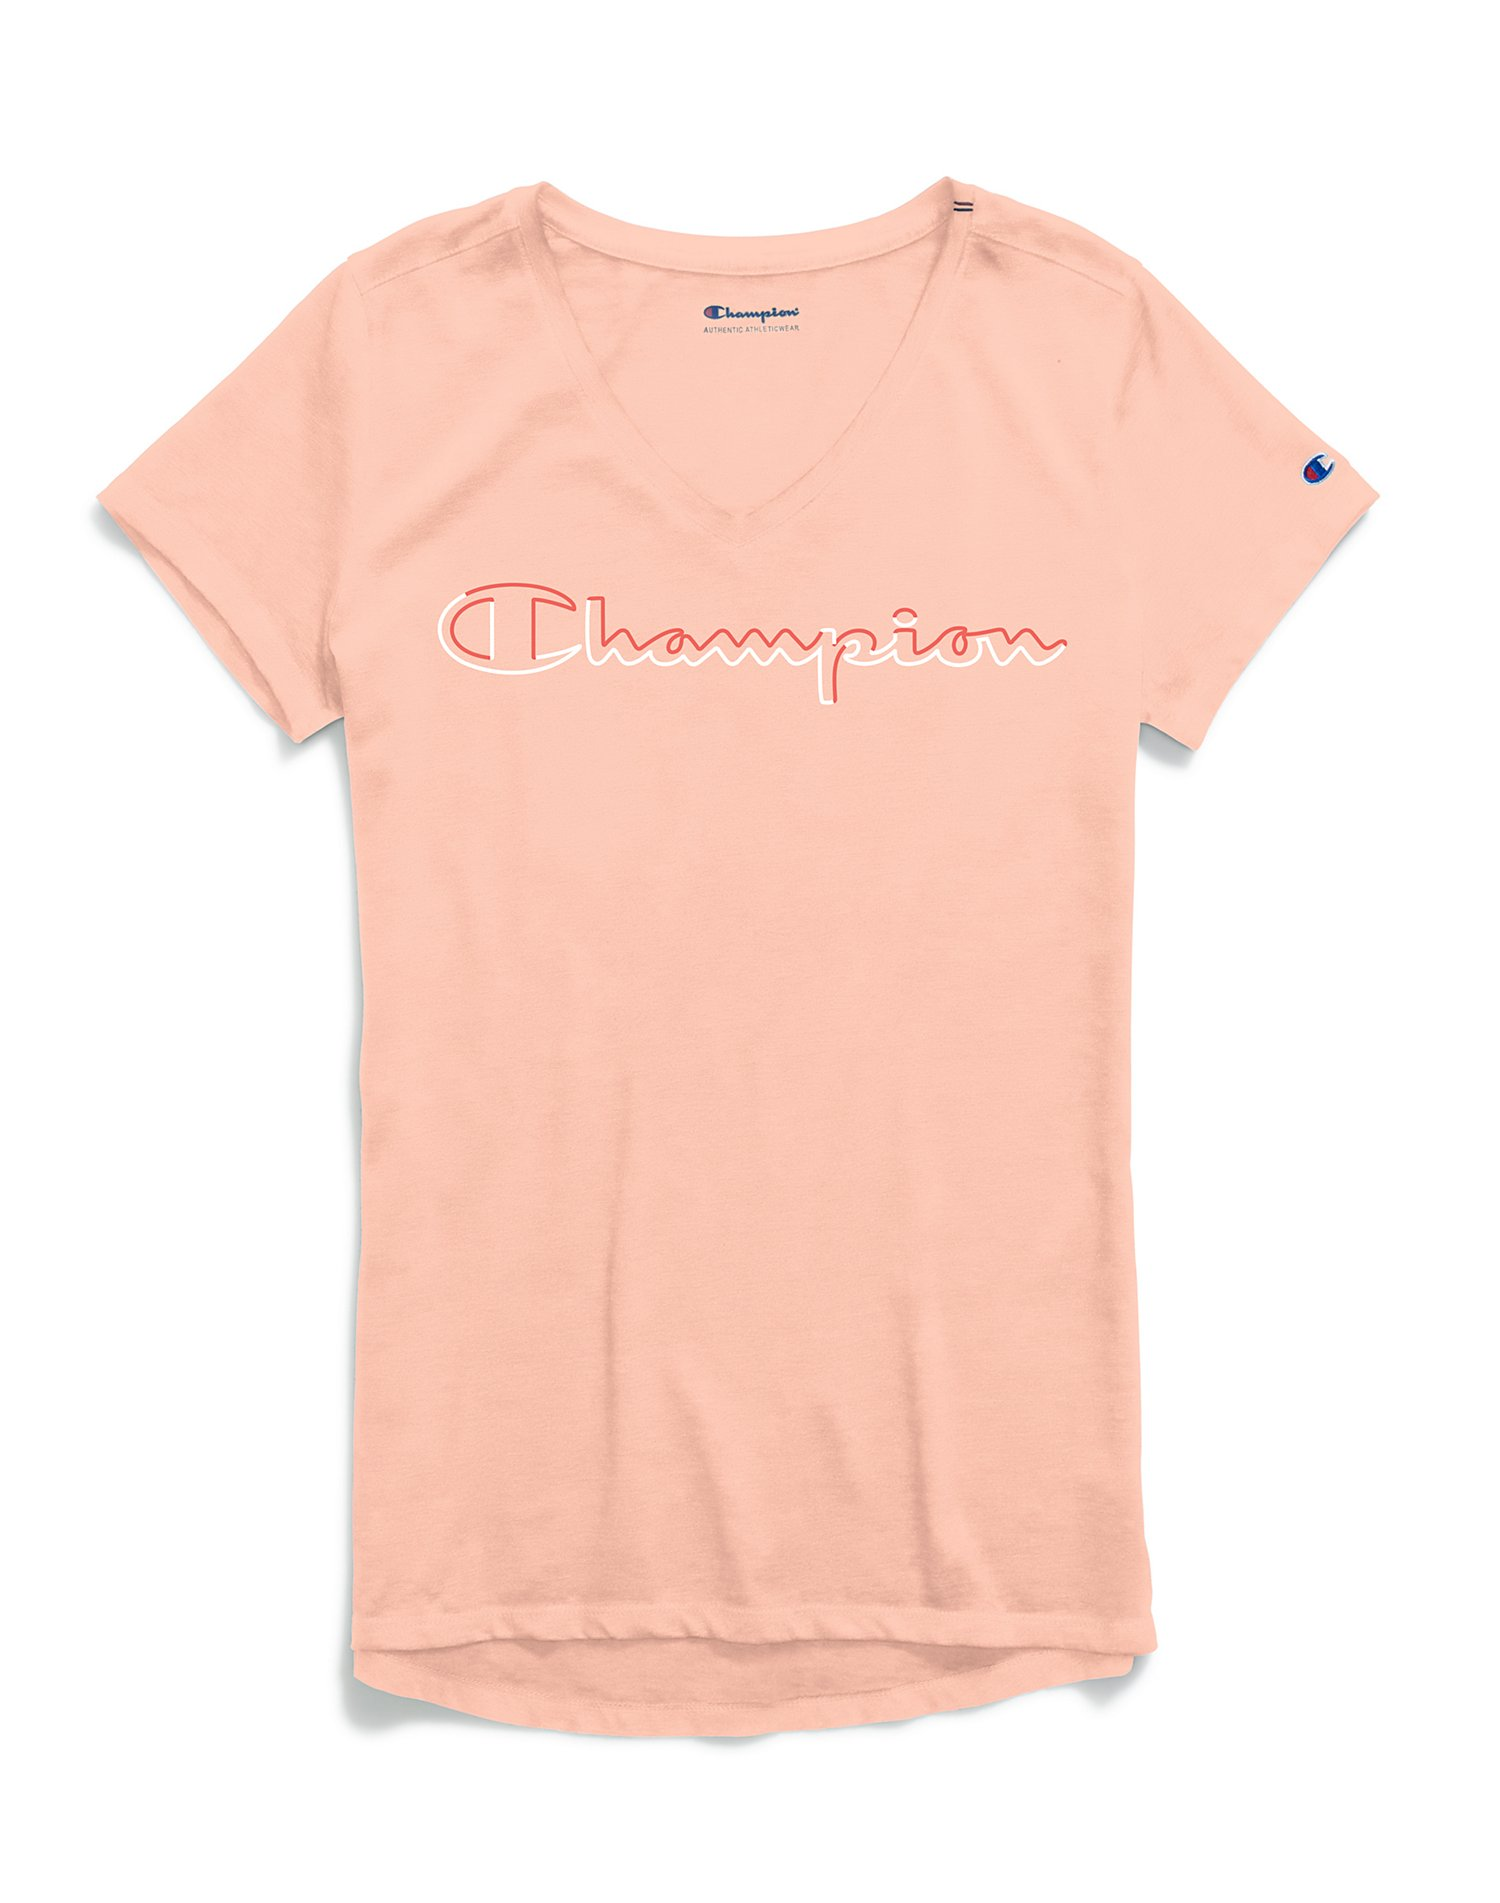 6dad9b04a Champion Women's Authentic Wash V-Neck Tee, Colorblock Logo   Maidenform